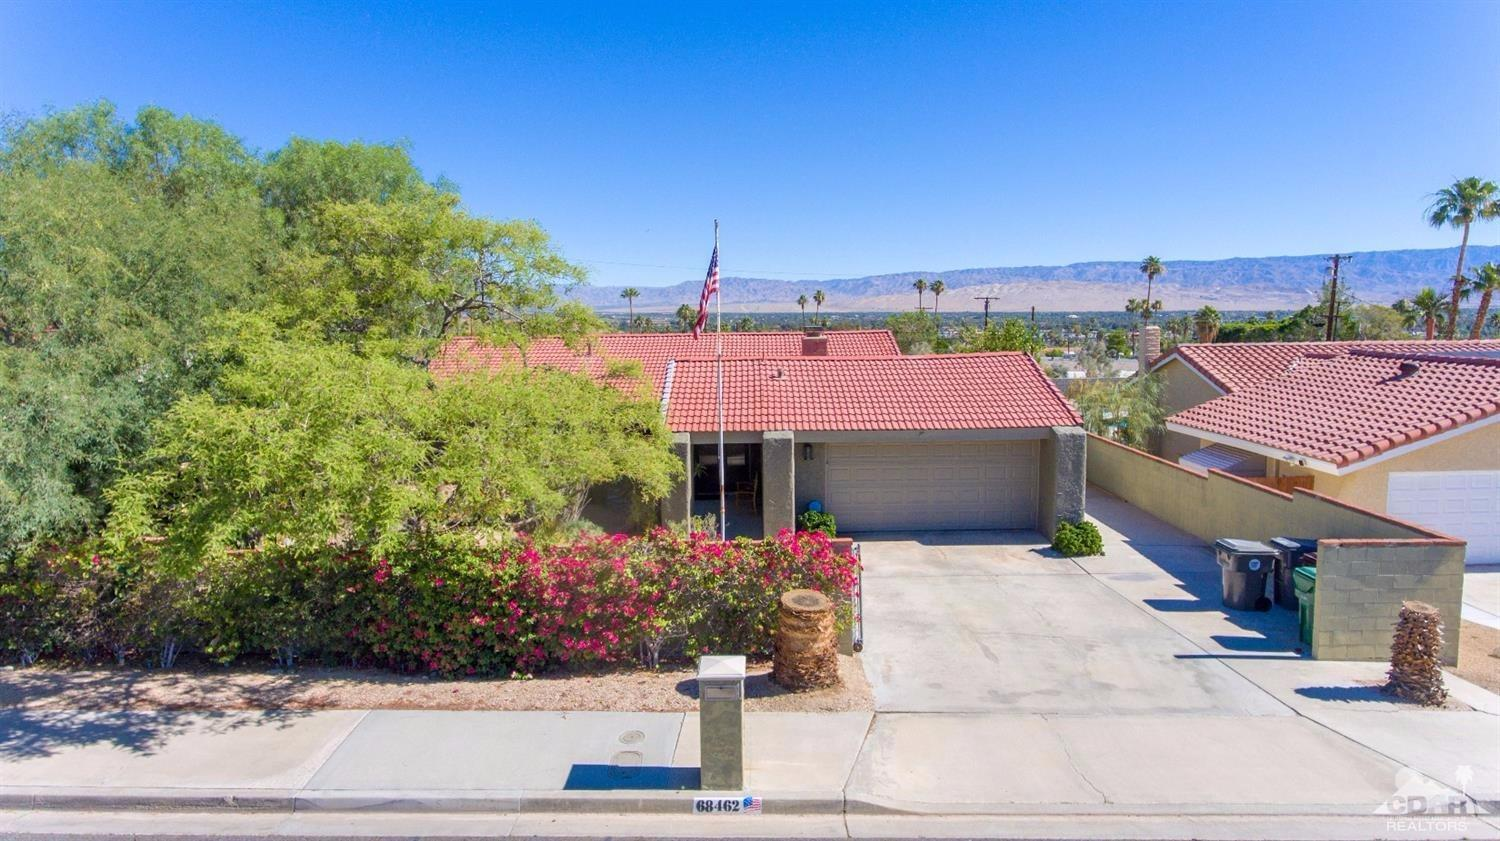 68462 Indigo Lane, Cathedral City, CA 92234